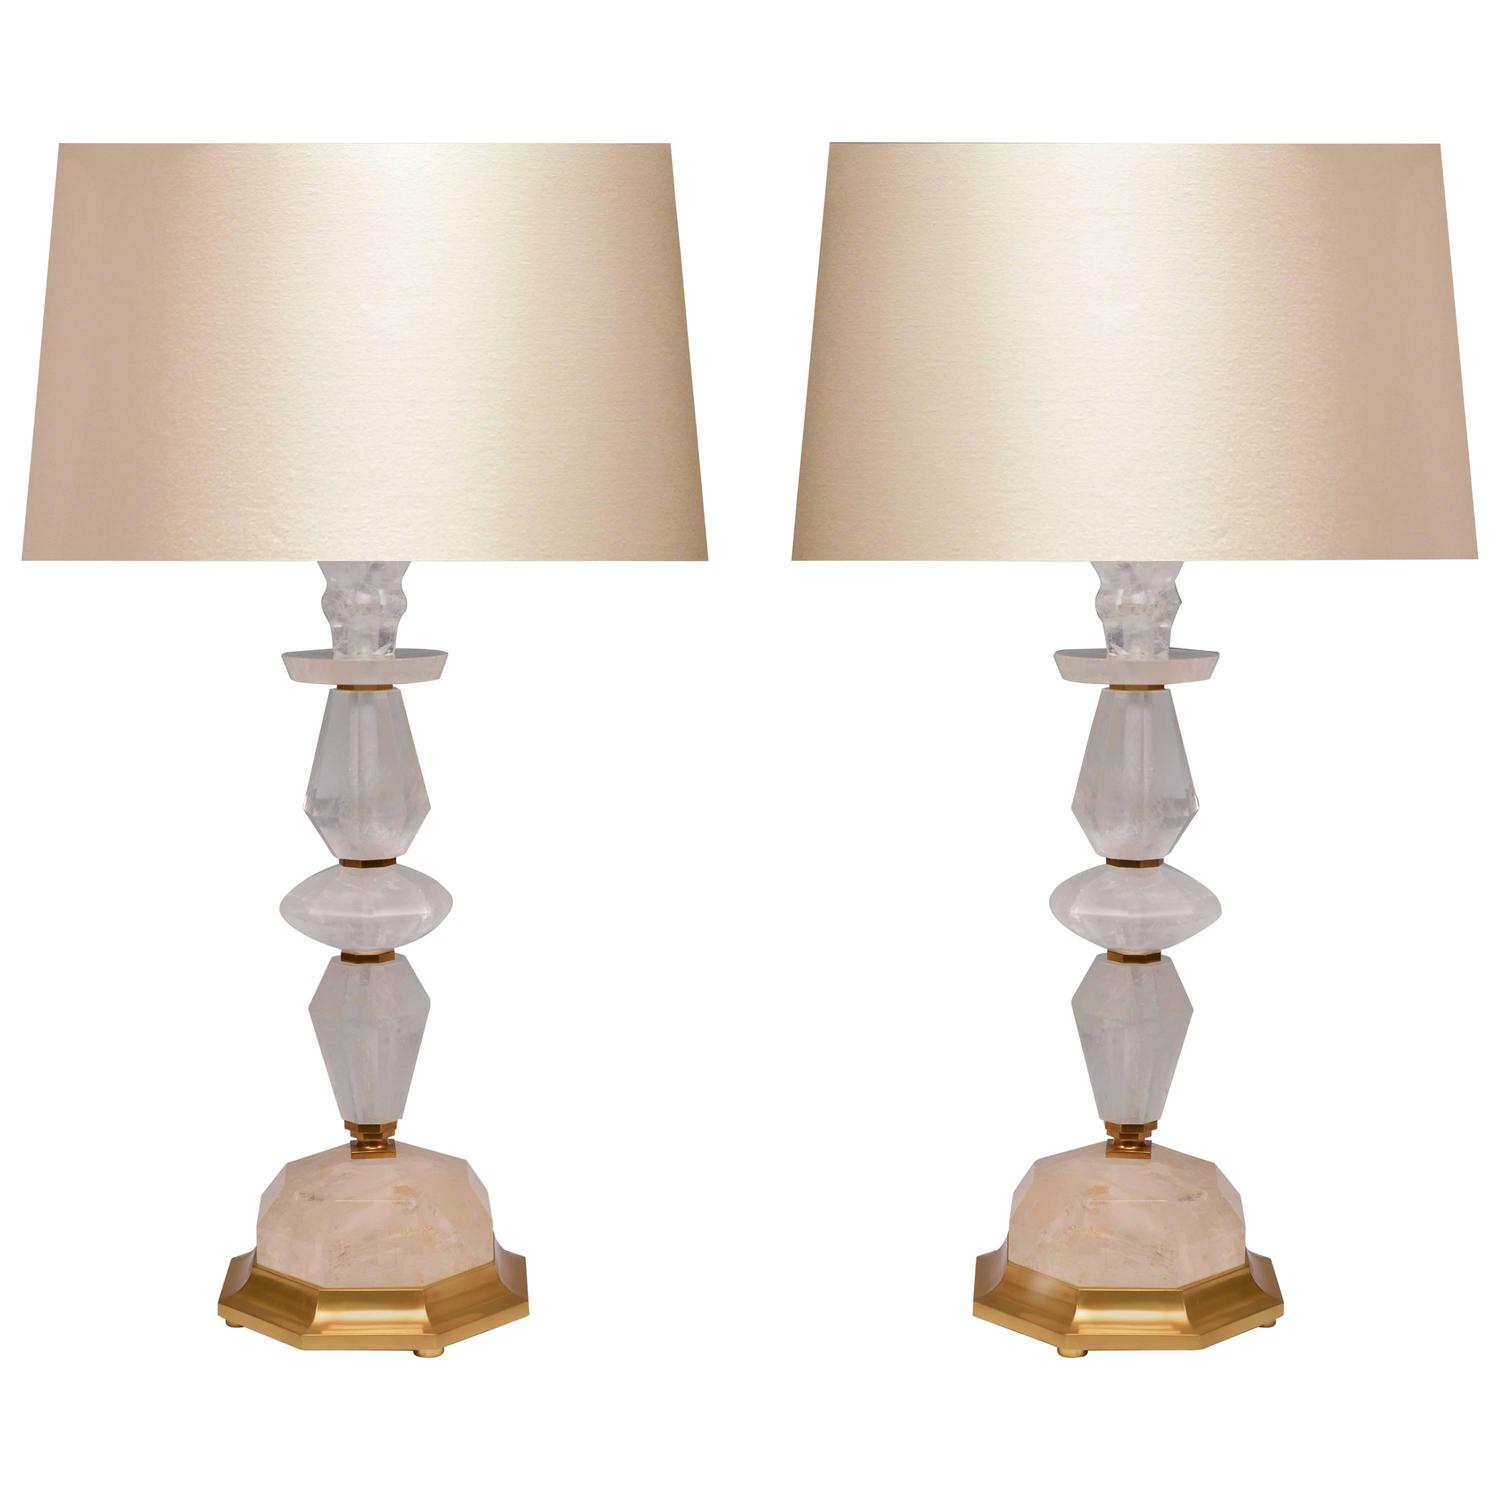 pair of elegant modern rock crystal quartz lamps for sale at 1stdibs. Black Bedroom Furniture Sets. Home Design Ideas